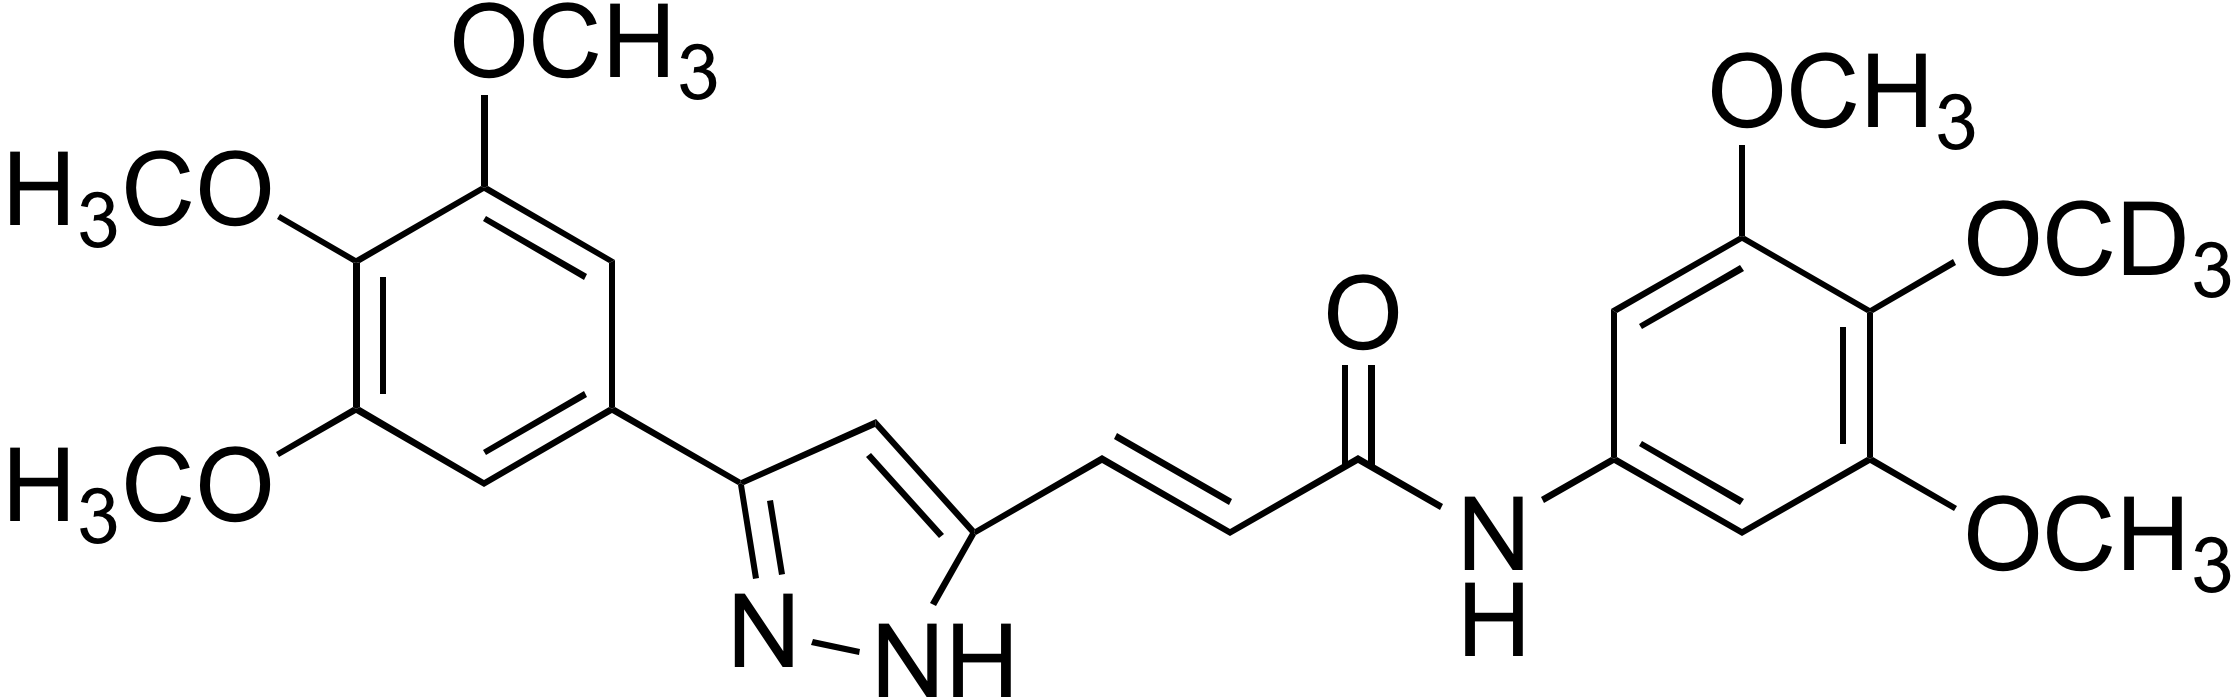 (E)-N-(4-Methoxy-d<sub>3</sub> 3,5-dimethoxyphenyl)-3-(3-(3,4,5-trimethoxyphenyl)-1H-pyrazol-5-yl)acrylamide